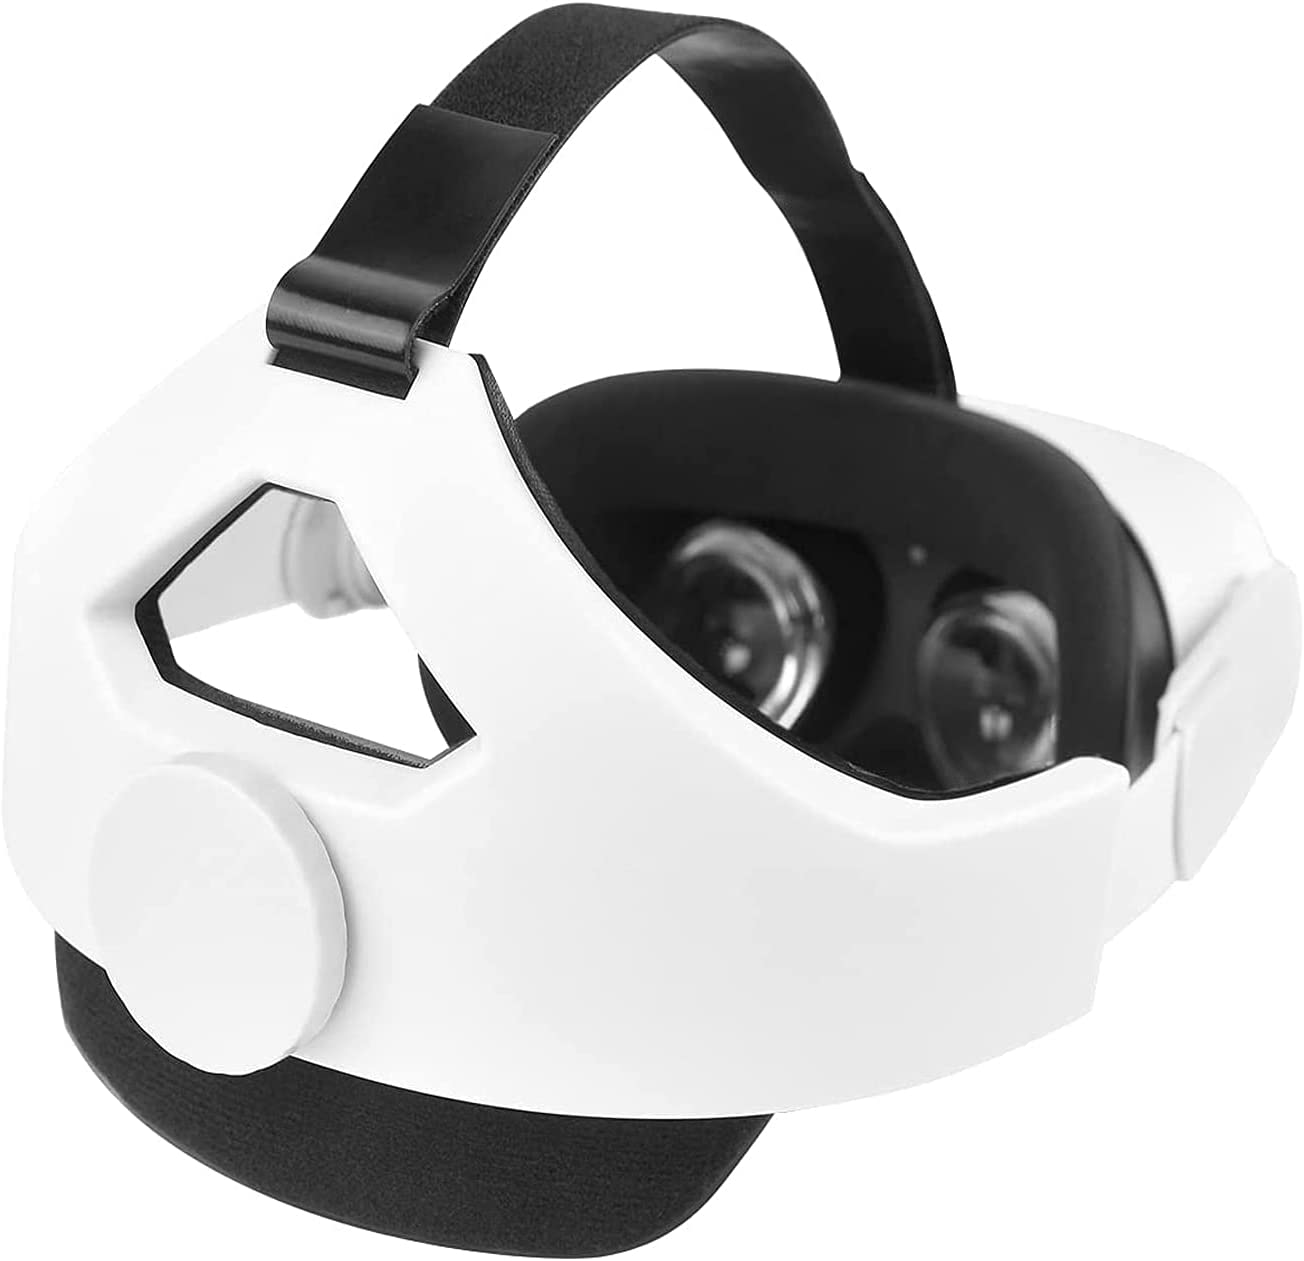 Adjustable Head Trap for Oculus Quest 2 with Head Cushion, Replacement for Elite Strap Comfortable Protective Head Strap Reduce Pressure(White)